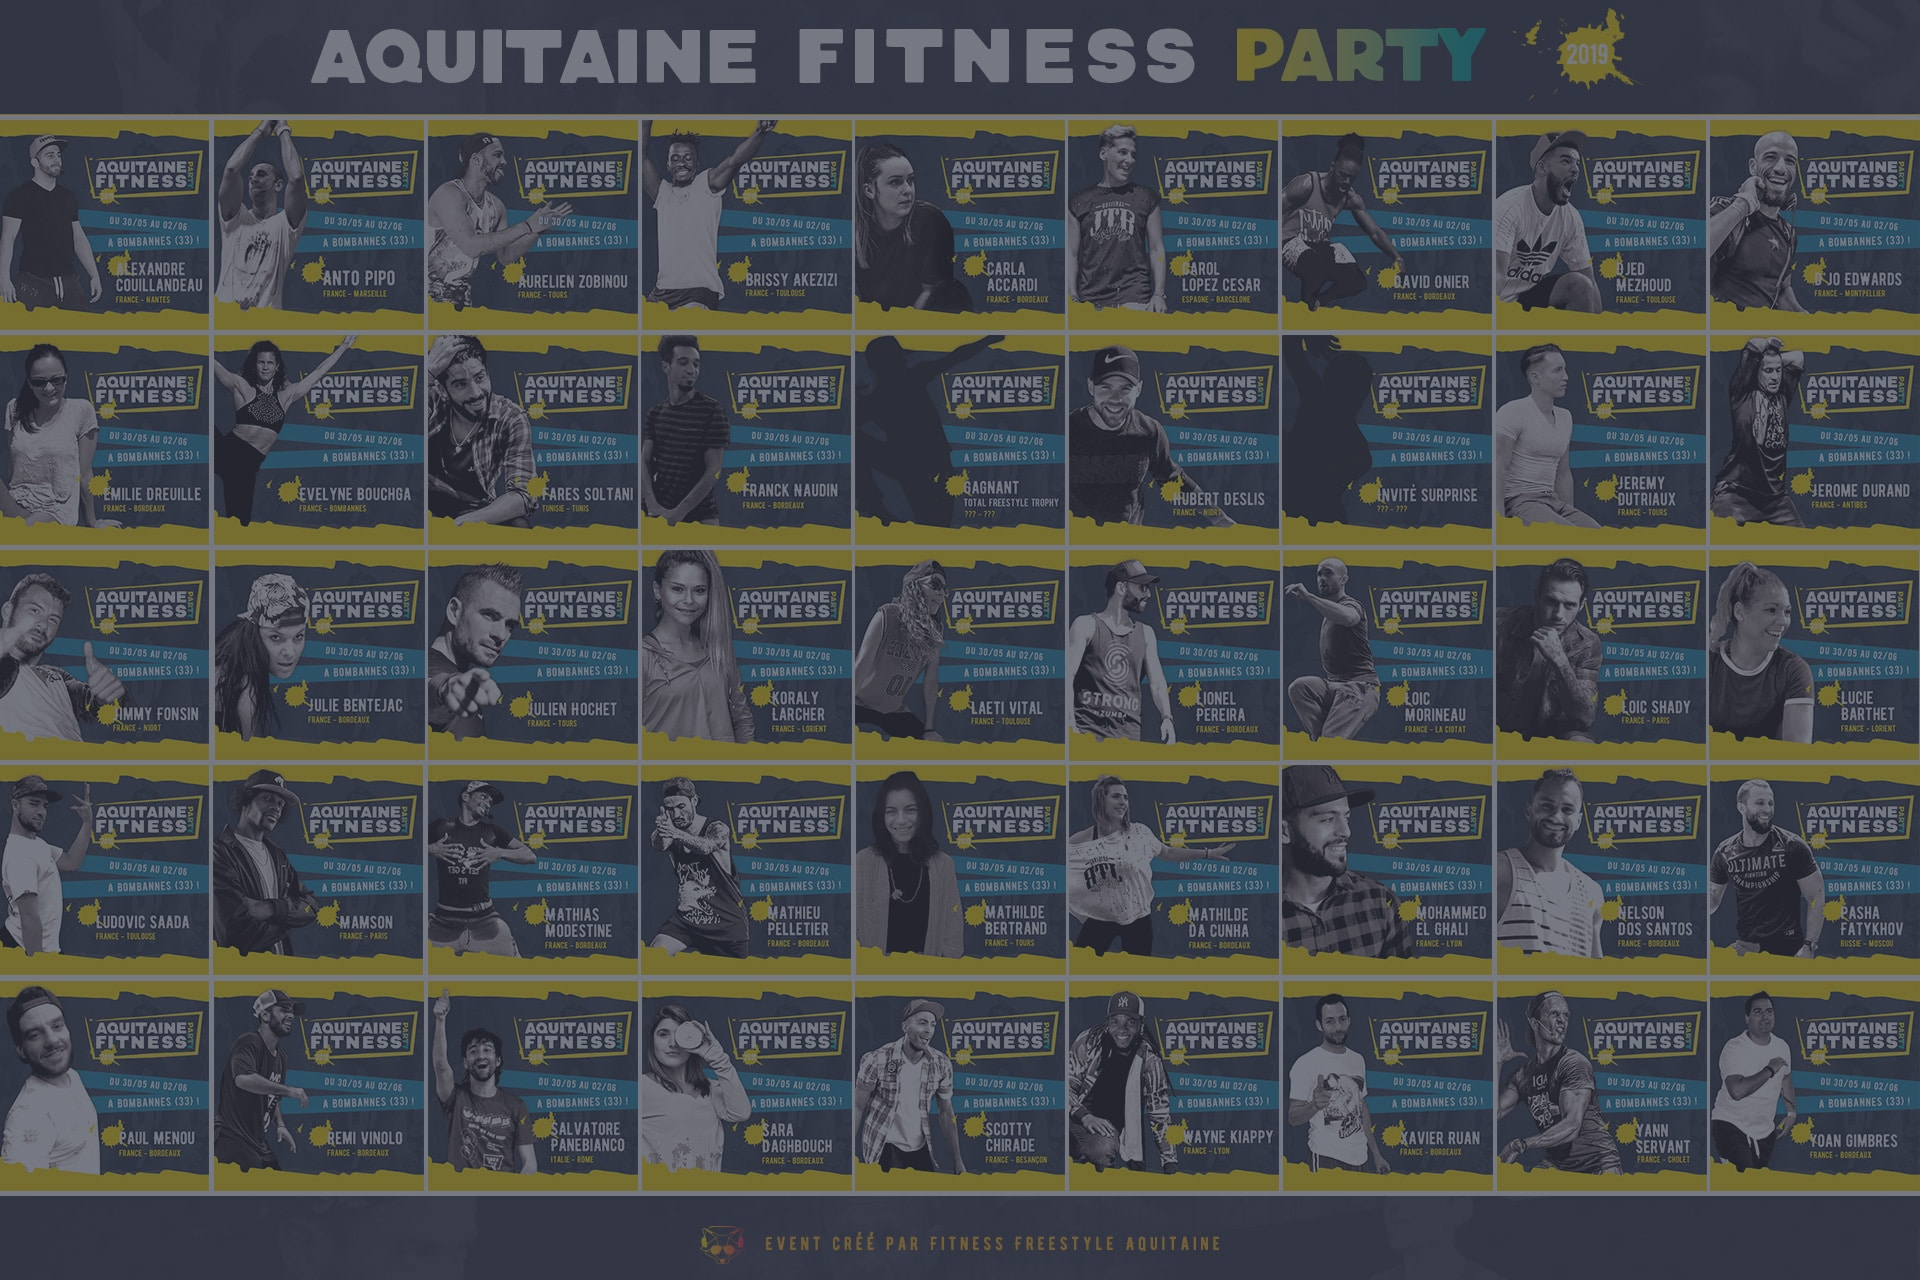 Aquitaine Fitness Party 2019 liste des profs